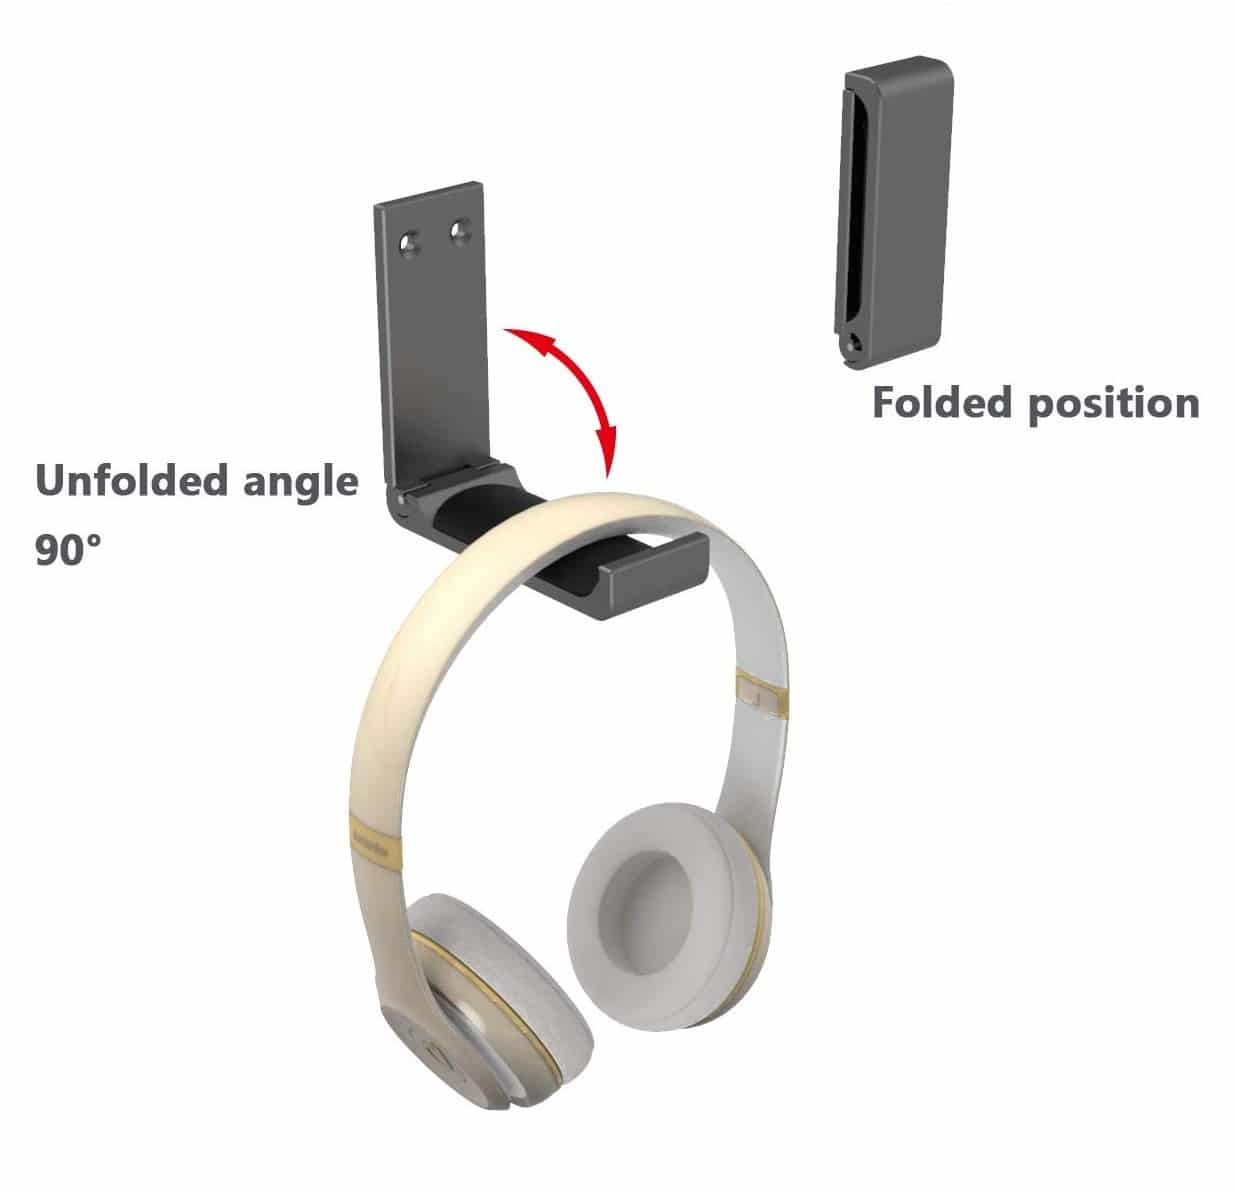 11.Yocice Headphone Stand Hanger,Headset Holder Mount,Hook Aluminum with Strong Adhesive Tape for Headphones (Black- HH03)